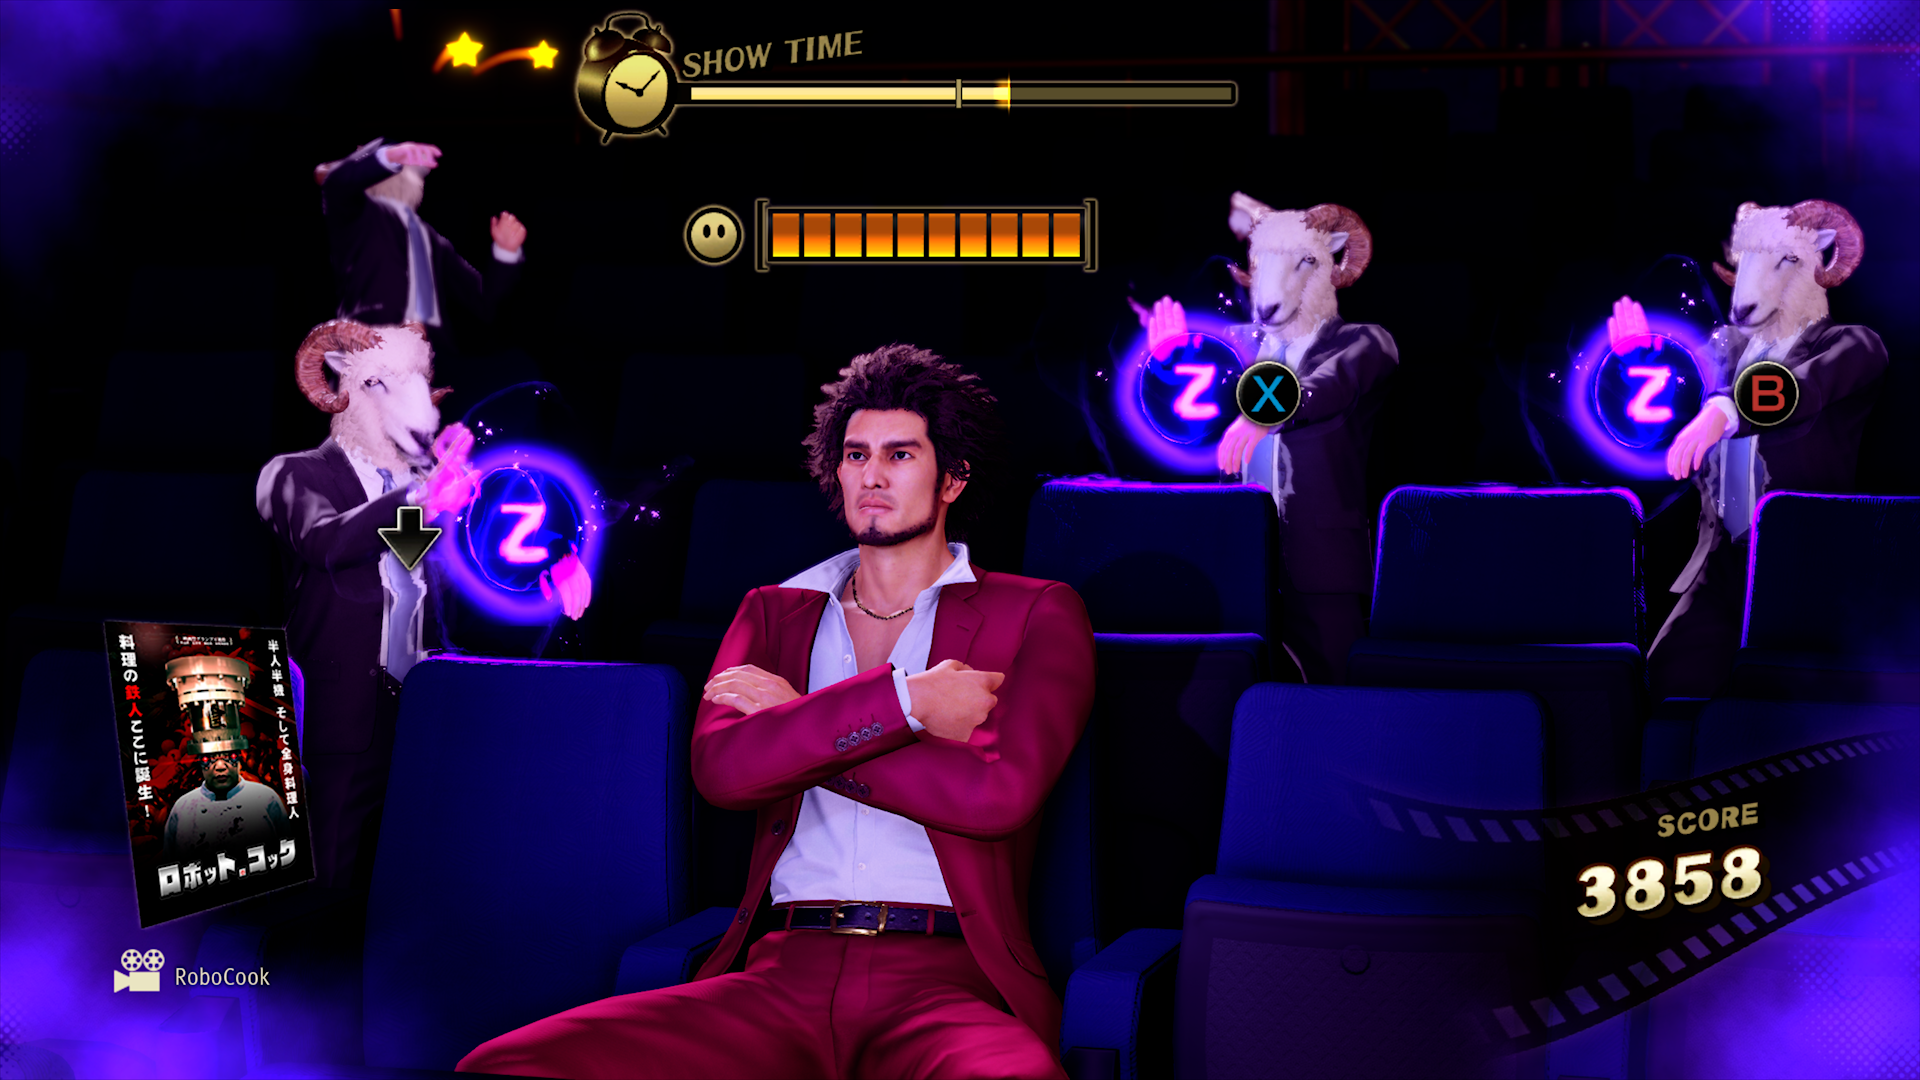 Yakuza: Like a Dragon. Ichiban Kasuga sits at a movie theater, trying to stay awake watching RoboCook, as the sheep-headed agents of sleep work their magic on him, hoping to make him catch some Z's.